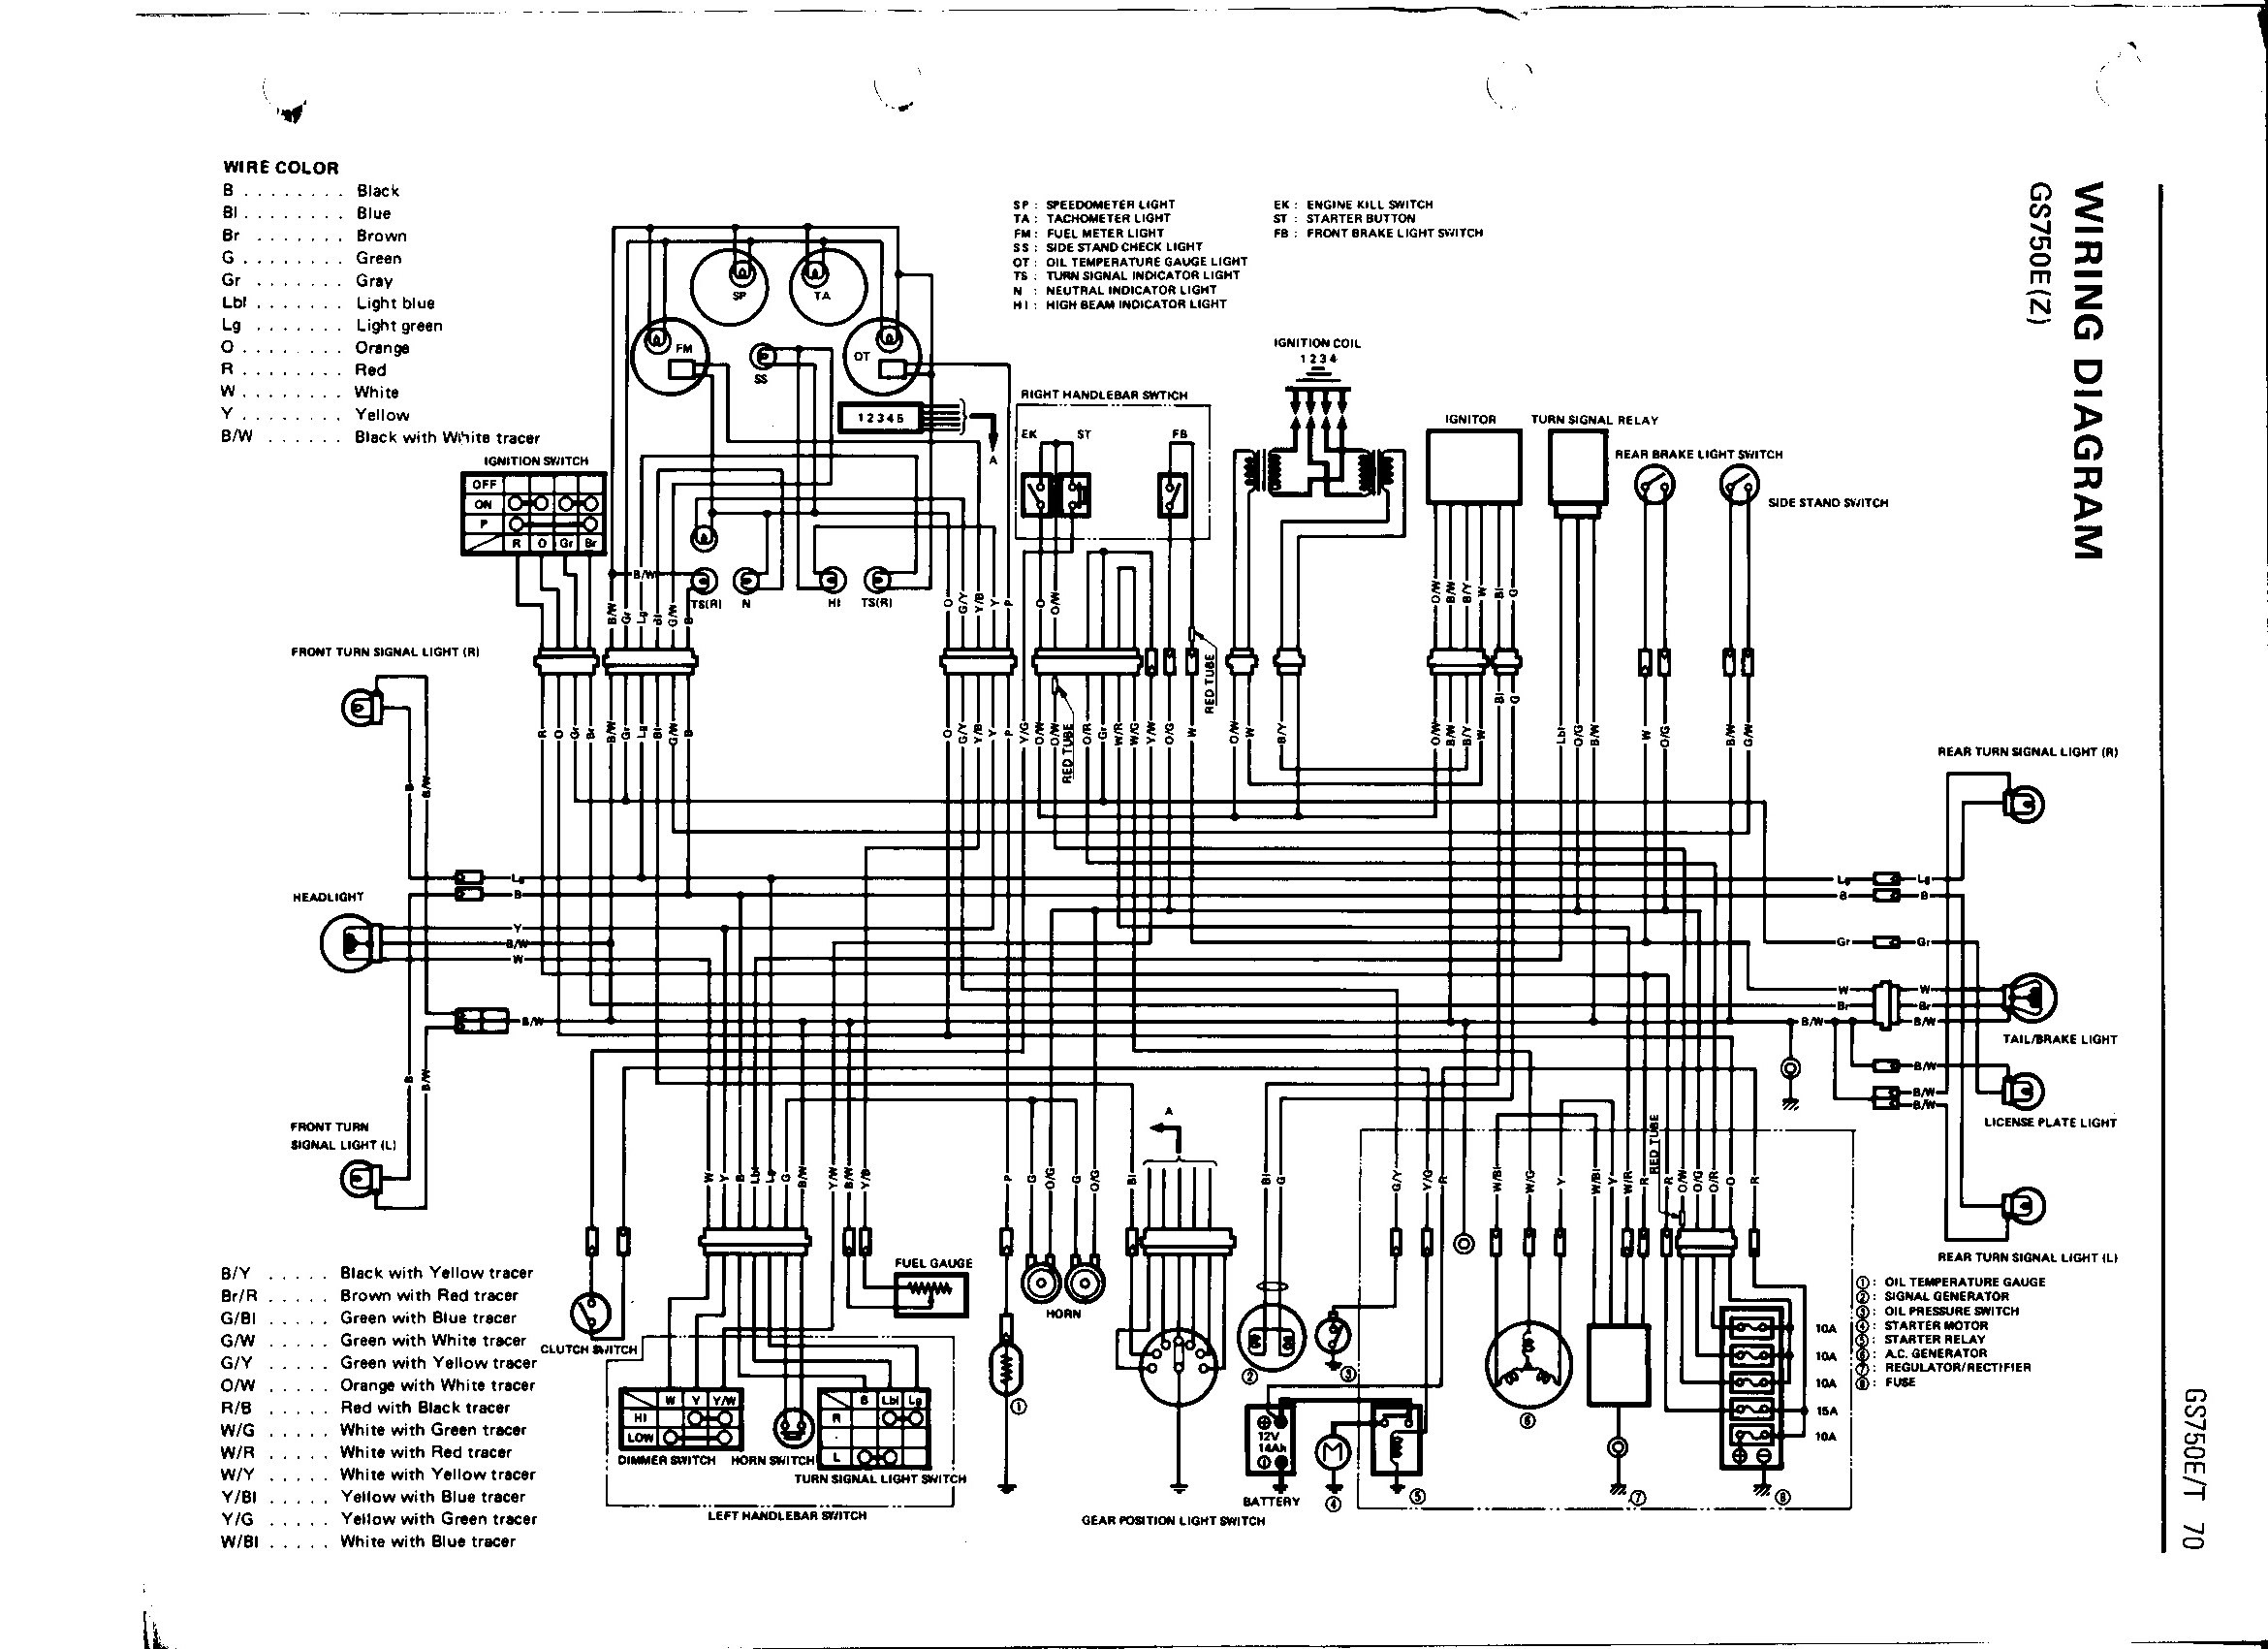 Transmission Circuit Schematic 2007 Suzuki forenza Diagram] 2008 Suzuki Sx4 Wiring Diagram Full Version Hd Of Transmission Circuit Schematic 2007 Suzuki forenza